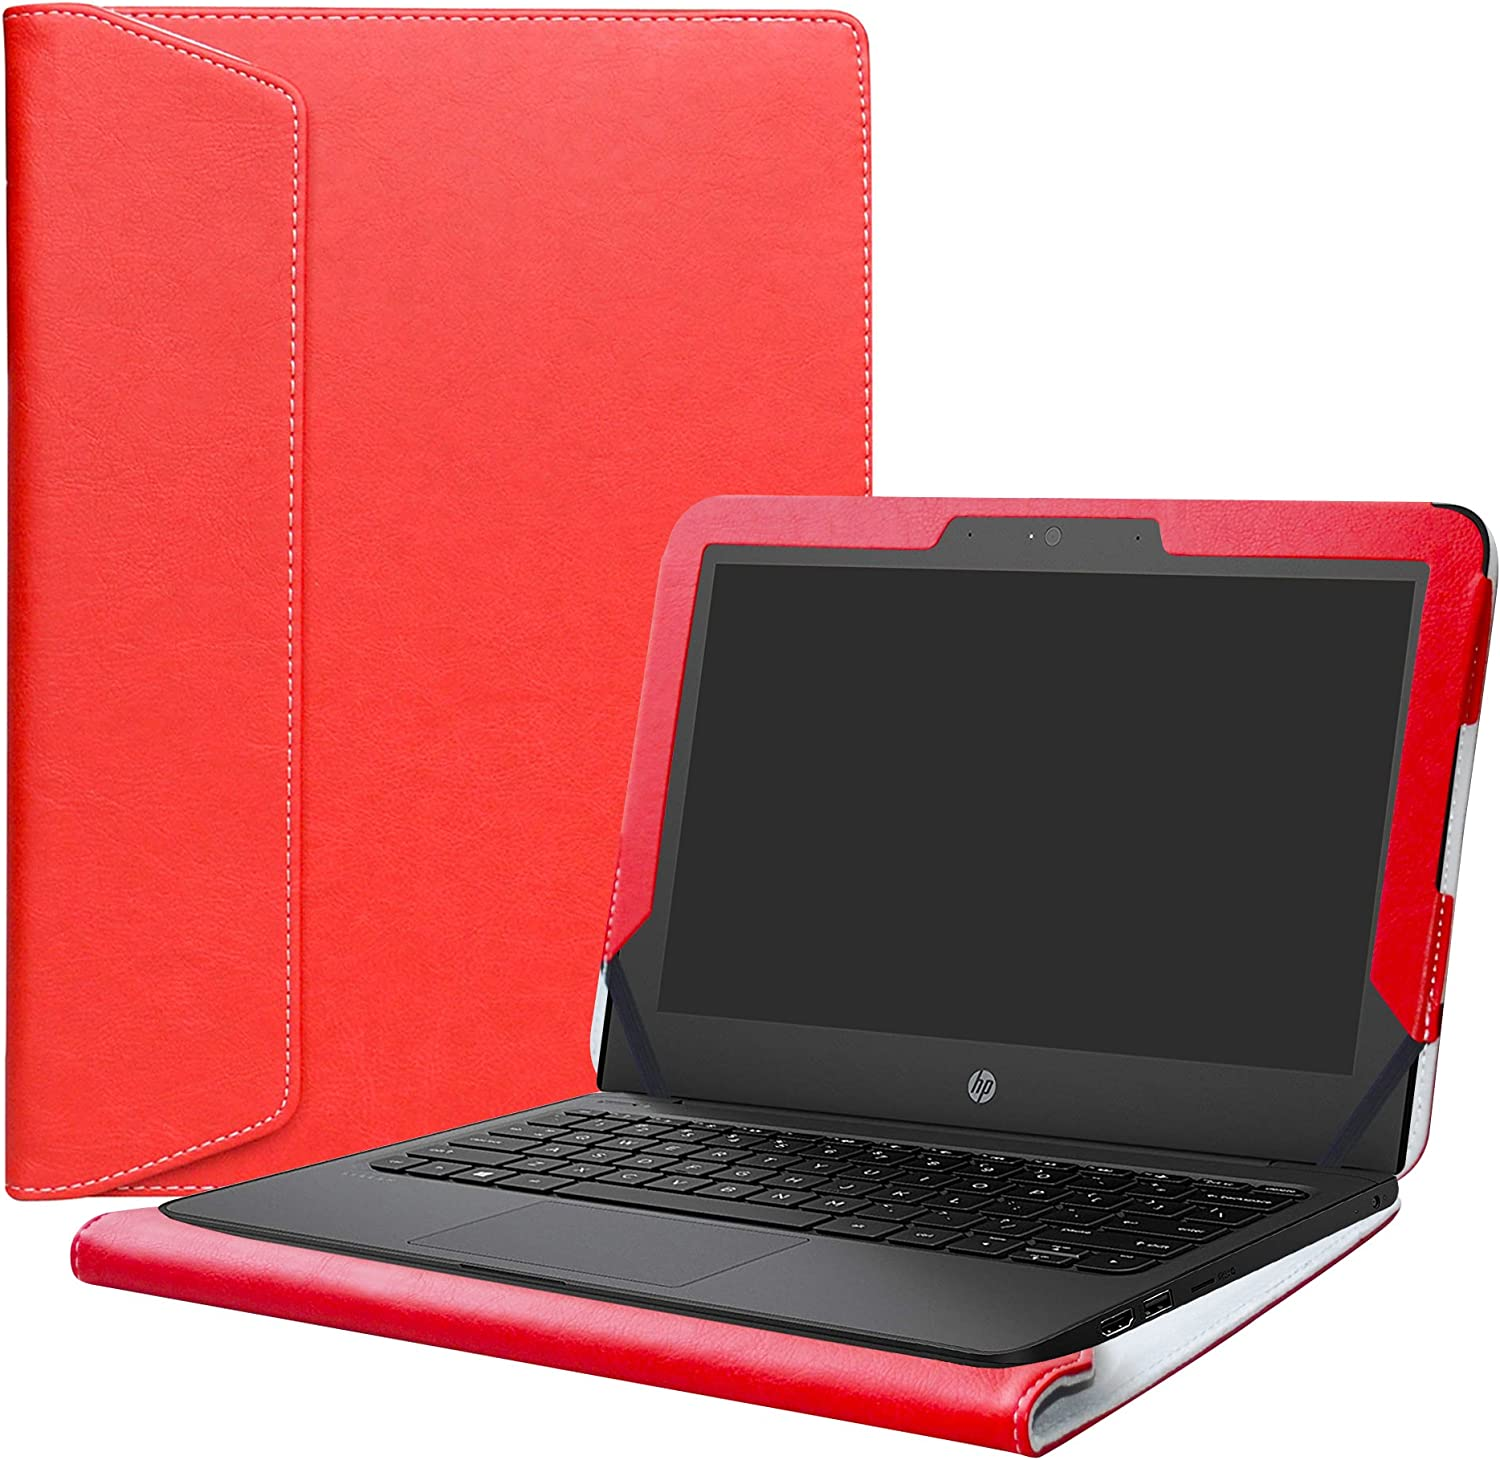 "Alapmk Protective Case Cover for 11.6"" HP Stream 11 Pro G5/G4/G3/G2/G1/11-ahXXX/11-rXXX/11-dXXX/11-yXXX Series Laptop(Warning:Not fit HP Stream x360 11),Red"